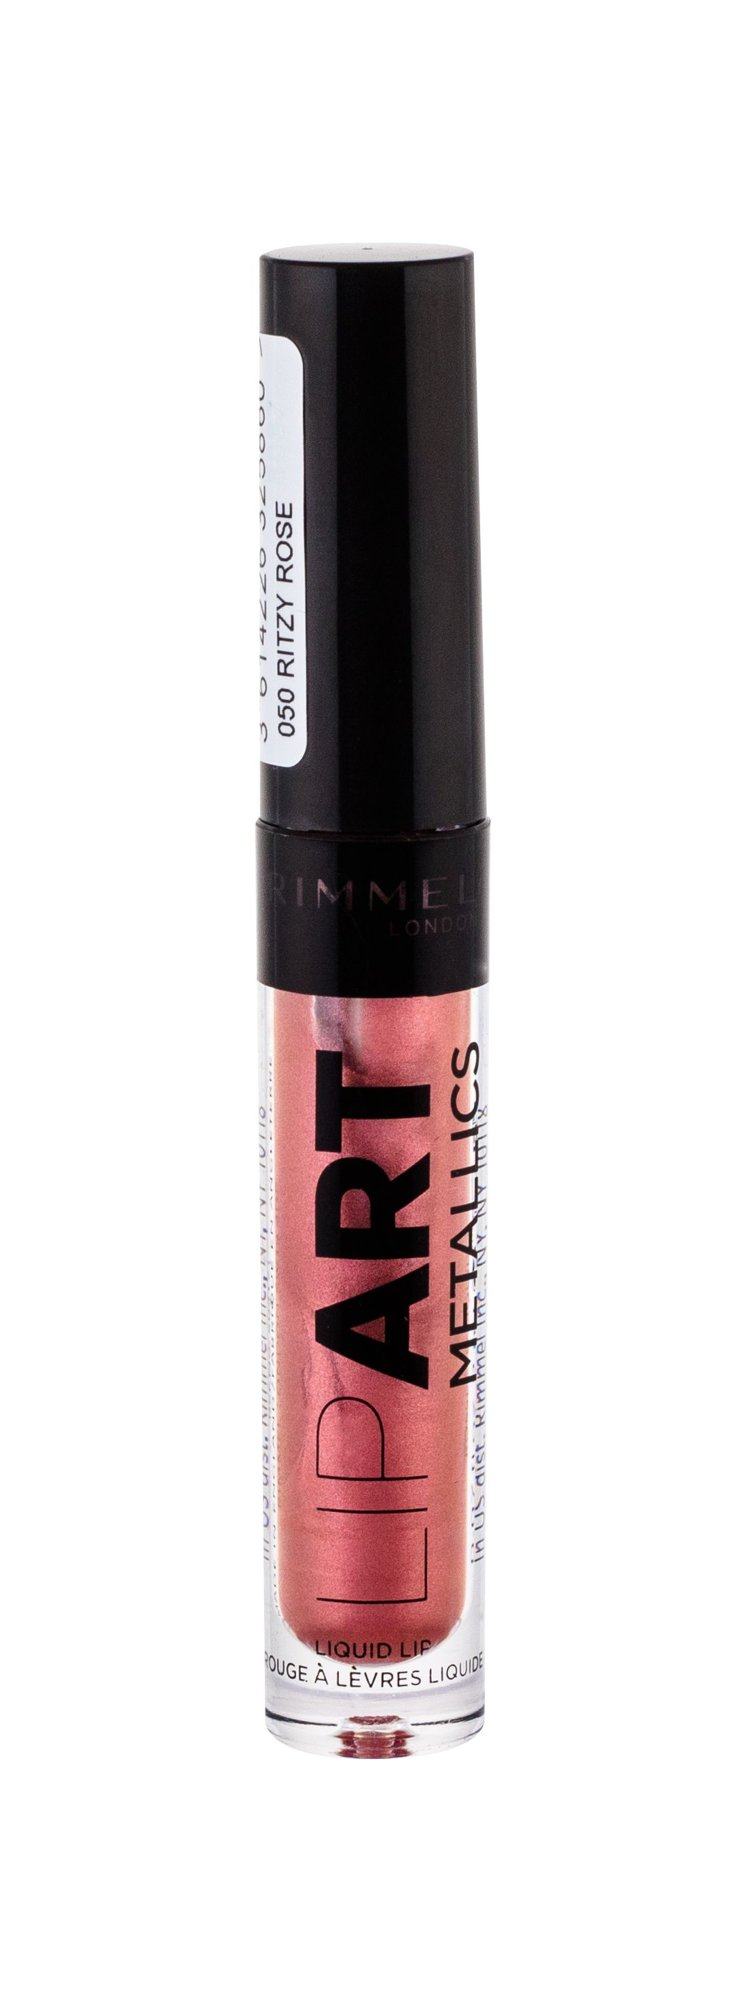 Rimmel London Lip Art Lip Gloss 2ml 050 Ritzy Rose